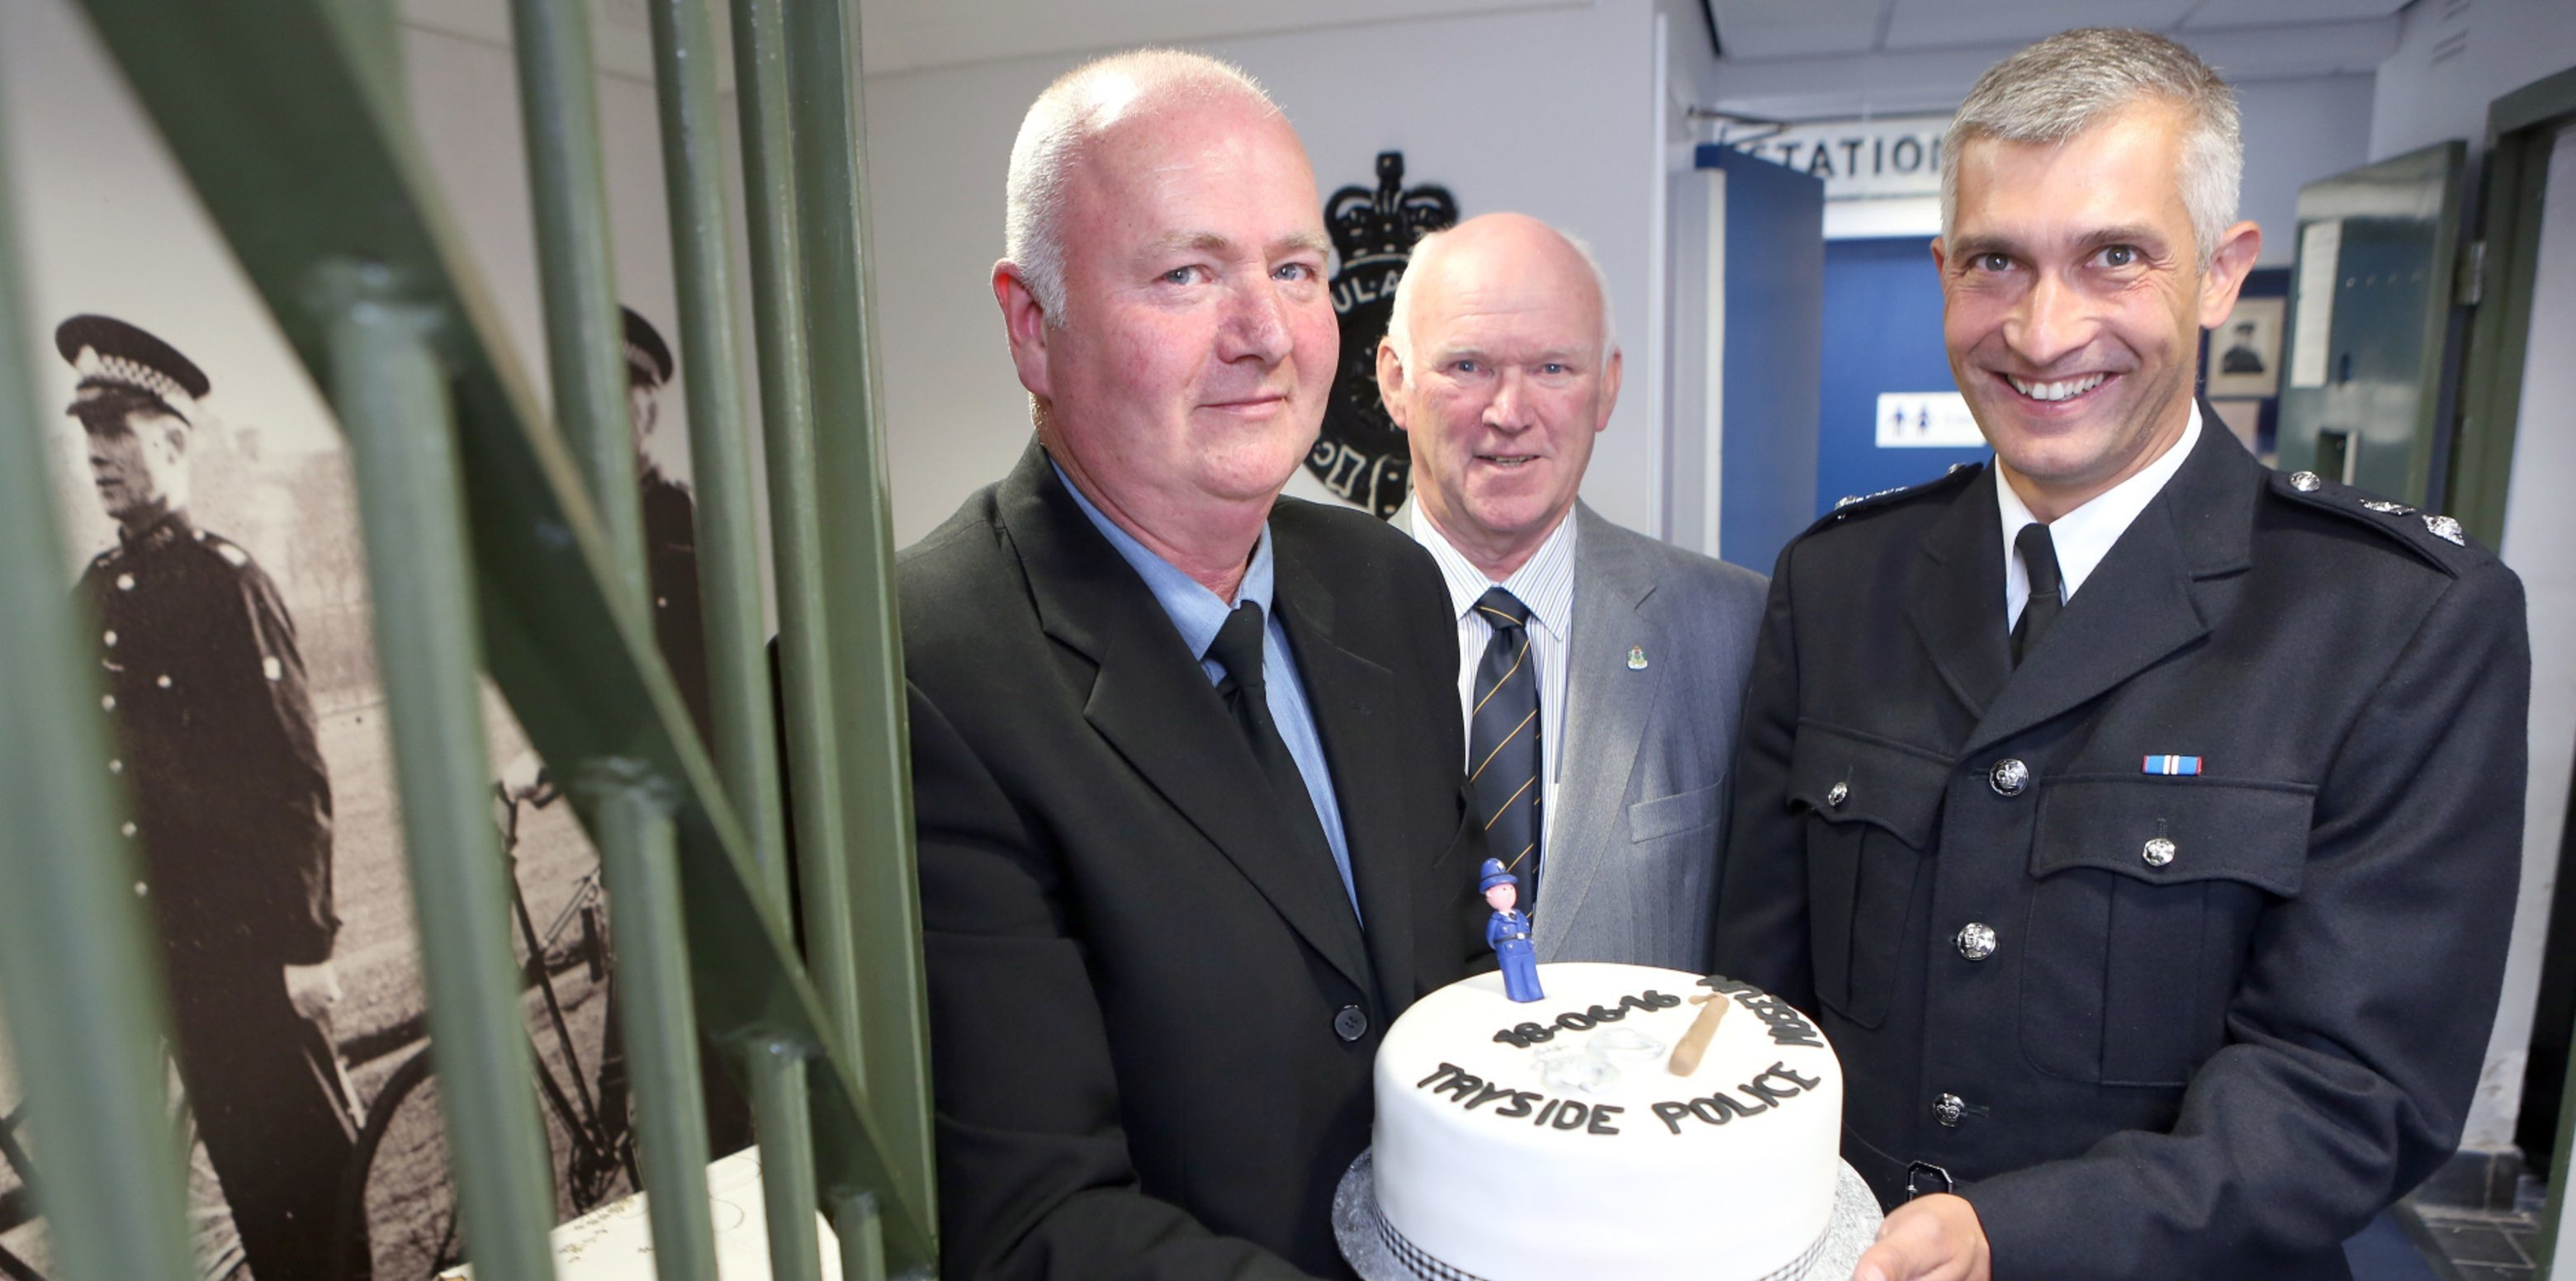 Hamish Gray, former Tayside chief constable Bill Spence and Chief Superintendent Paul Anderson celebrate the new museum.